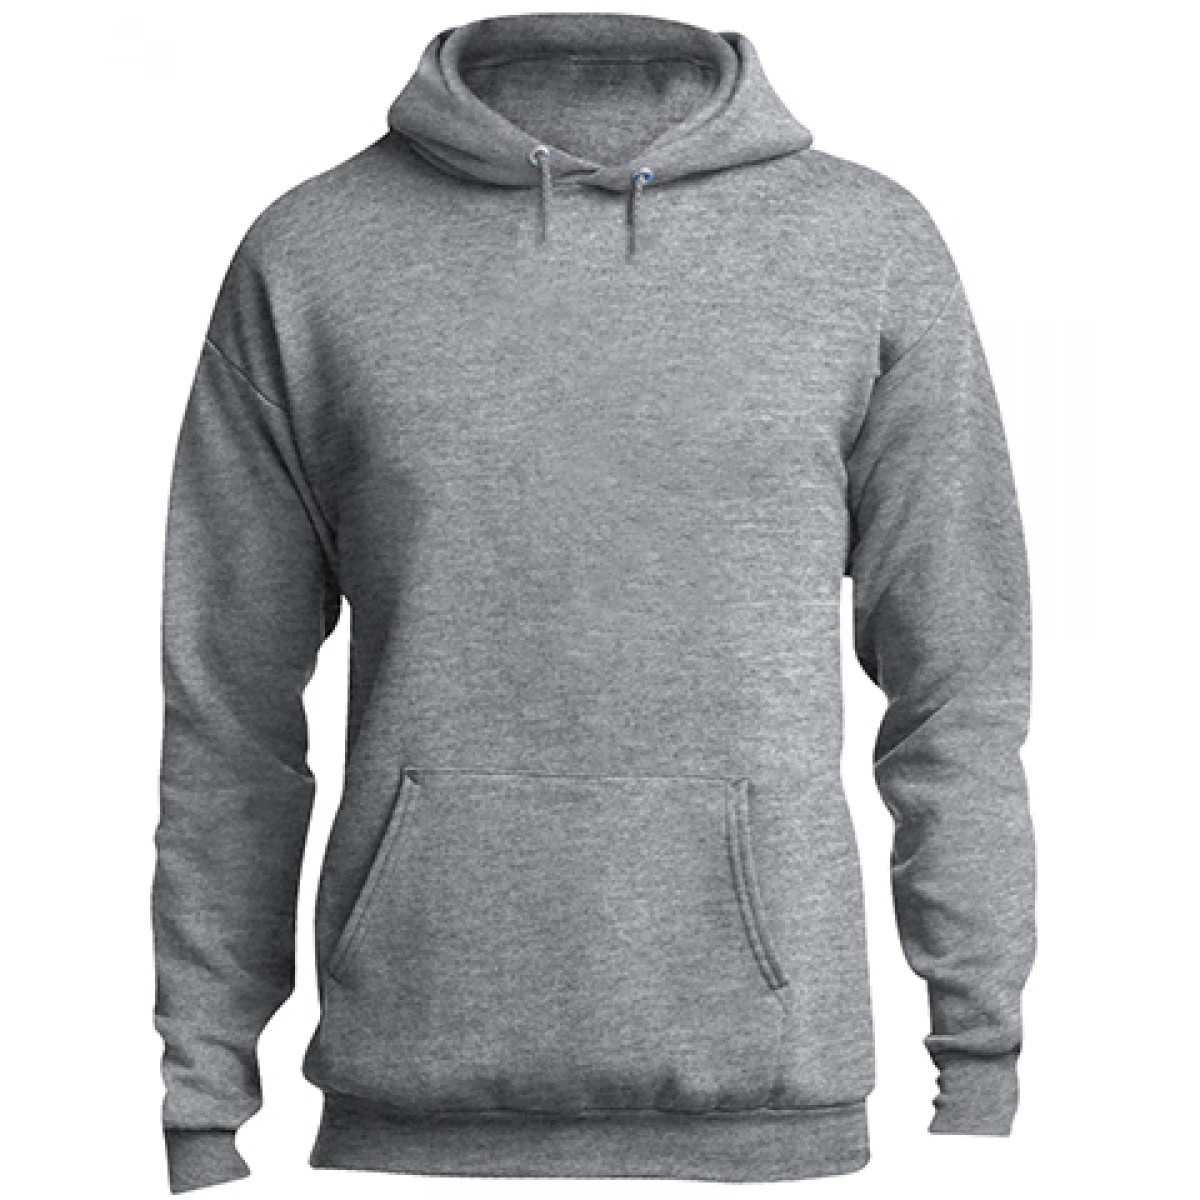 Classic Pullover Hooded Sweatshirt-Athletic Heather-S